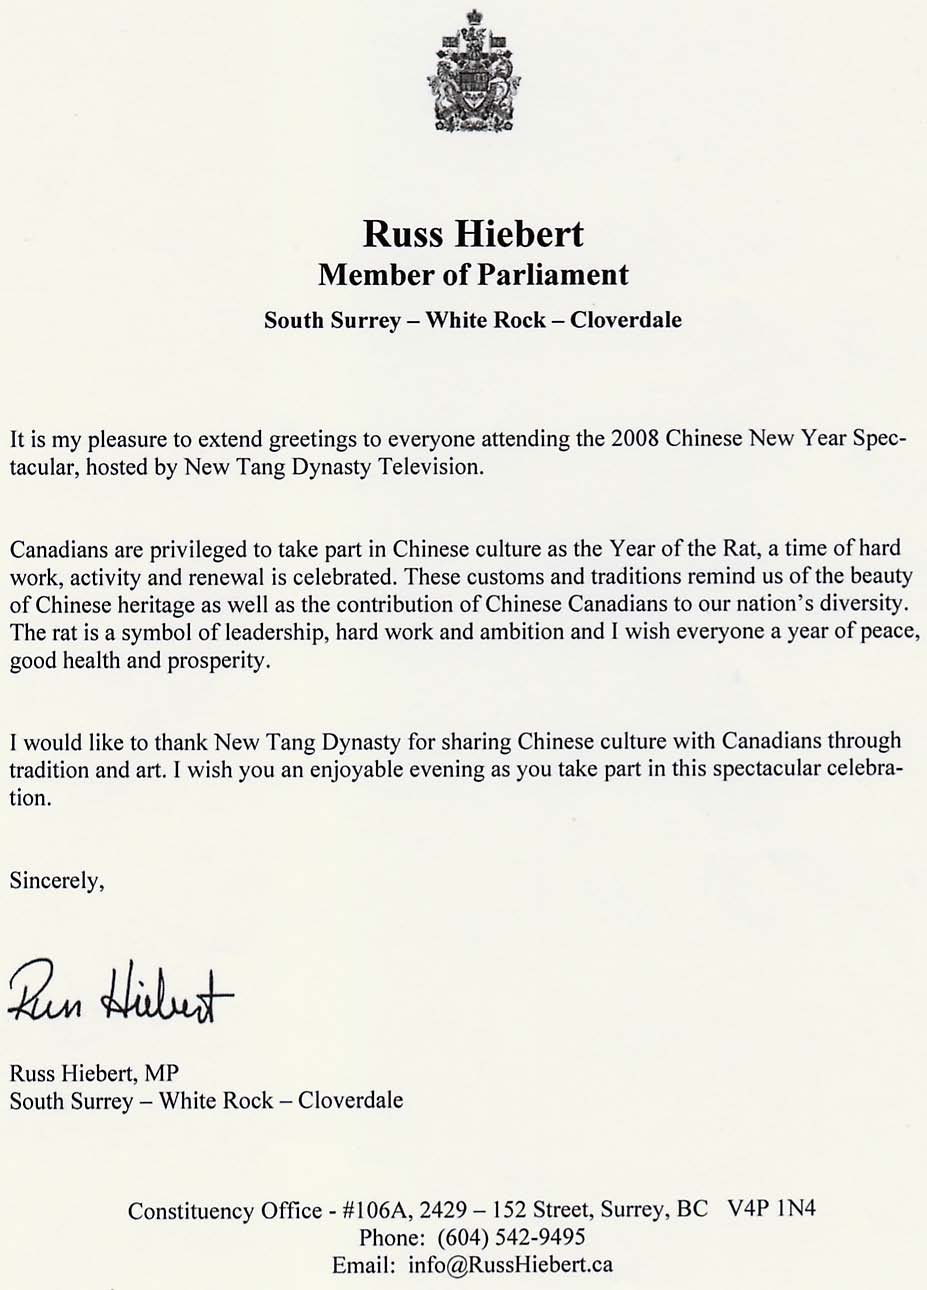 Canada vips in british columbia welcome divine performing arts letter from russ hiebert member of parliament buycottarizona Image collections